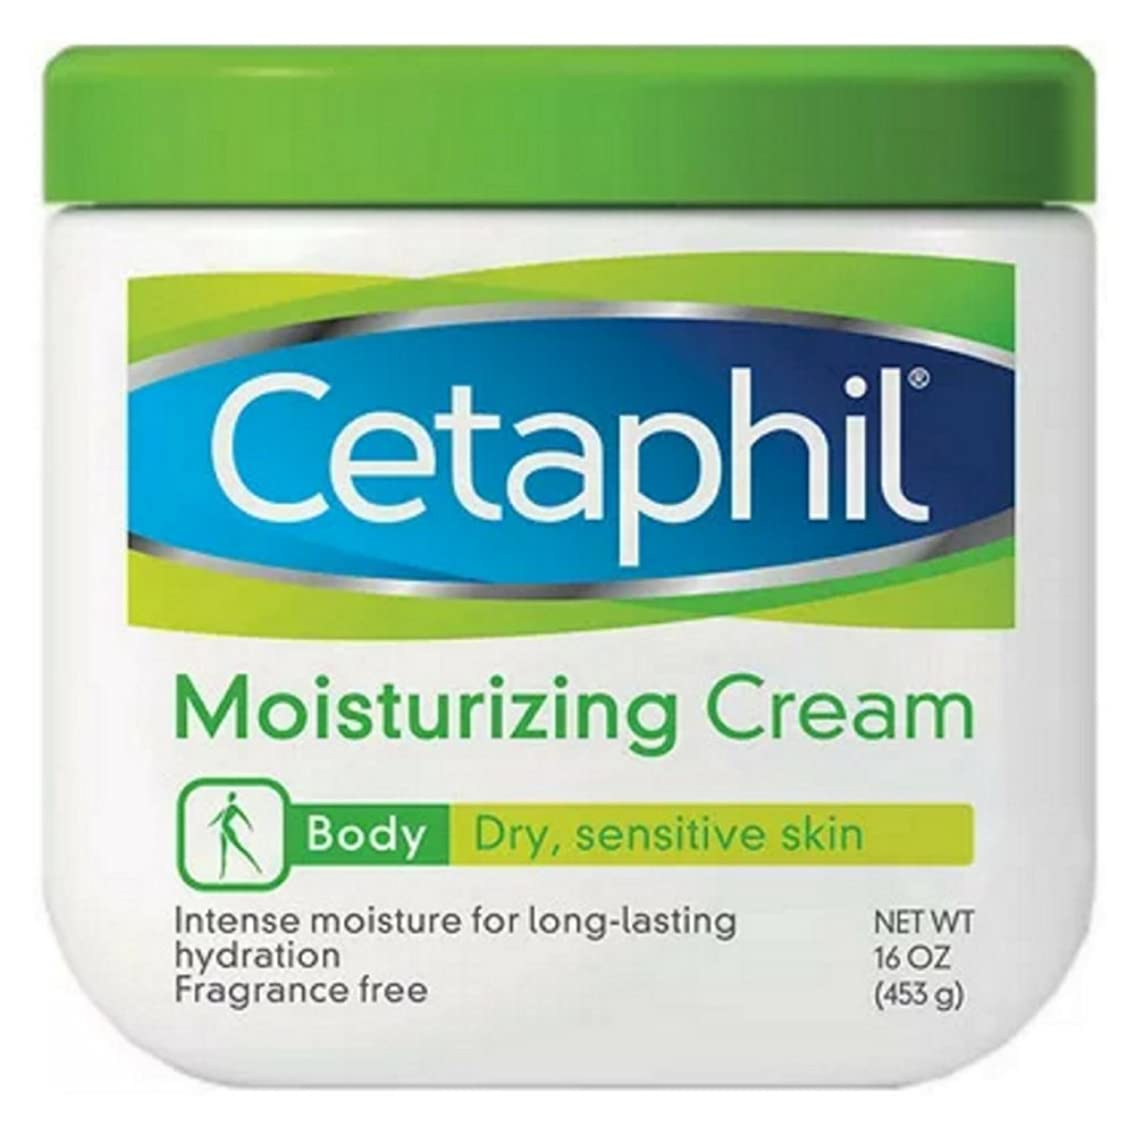 応答非効率的な項目Cetaphil Moisturizing Cream, Fragrance Free 16 oz (453 g)